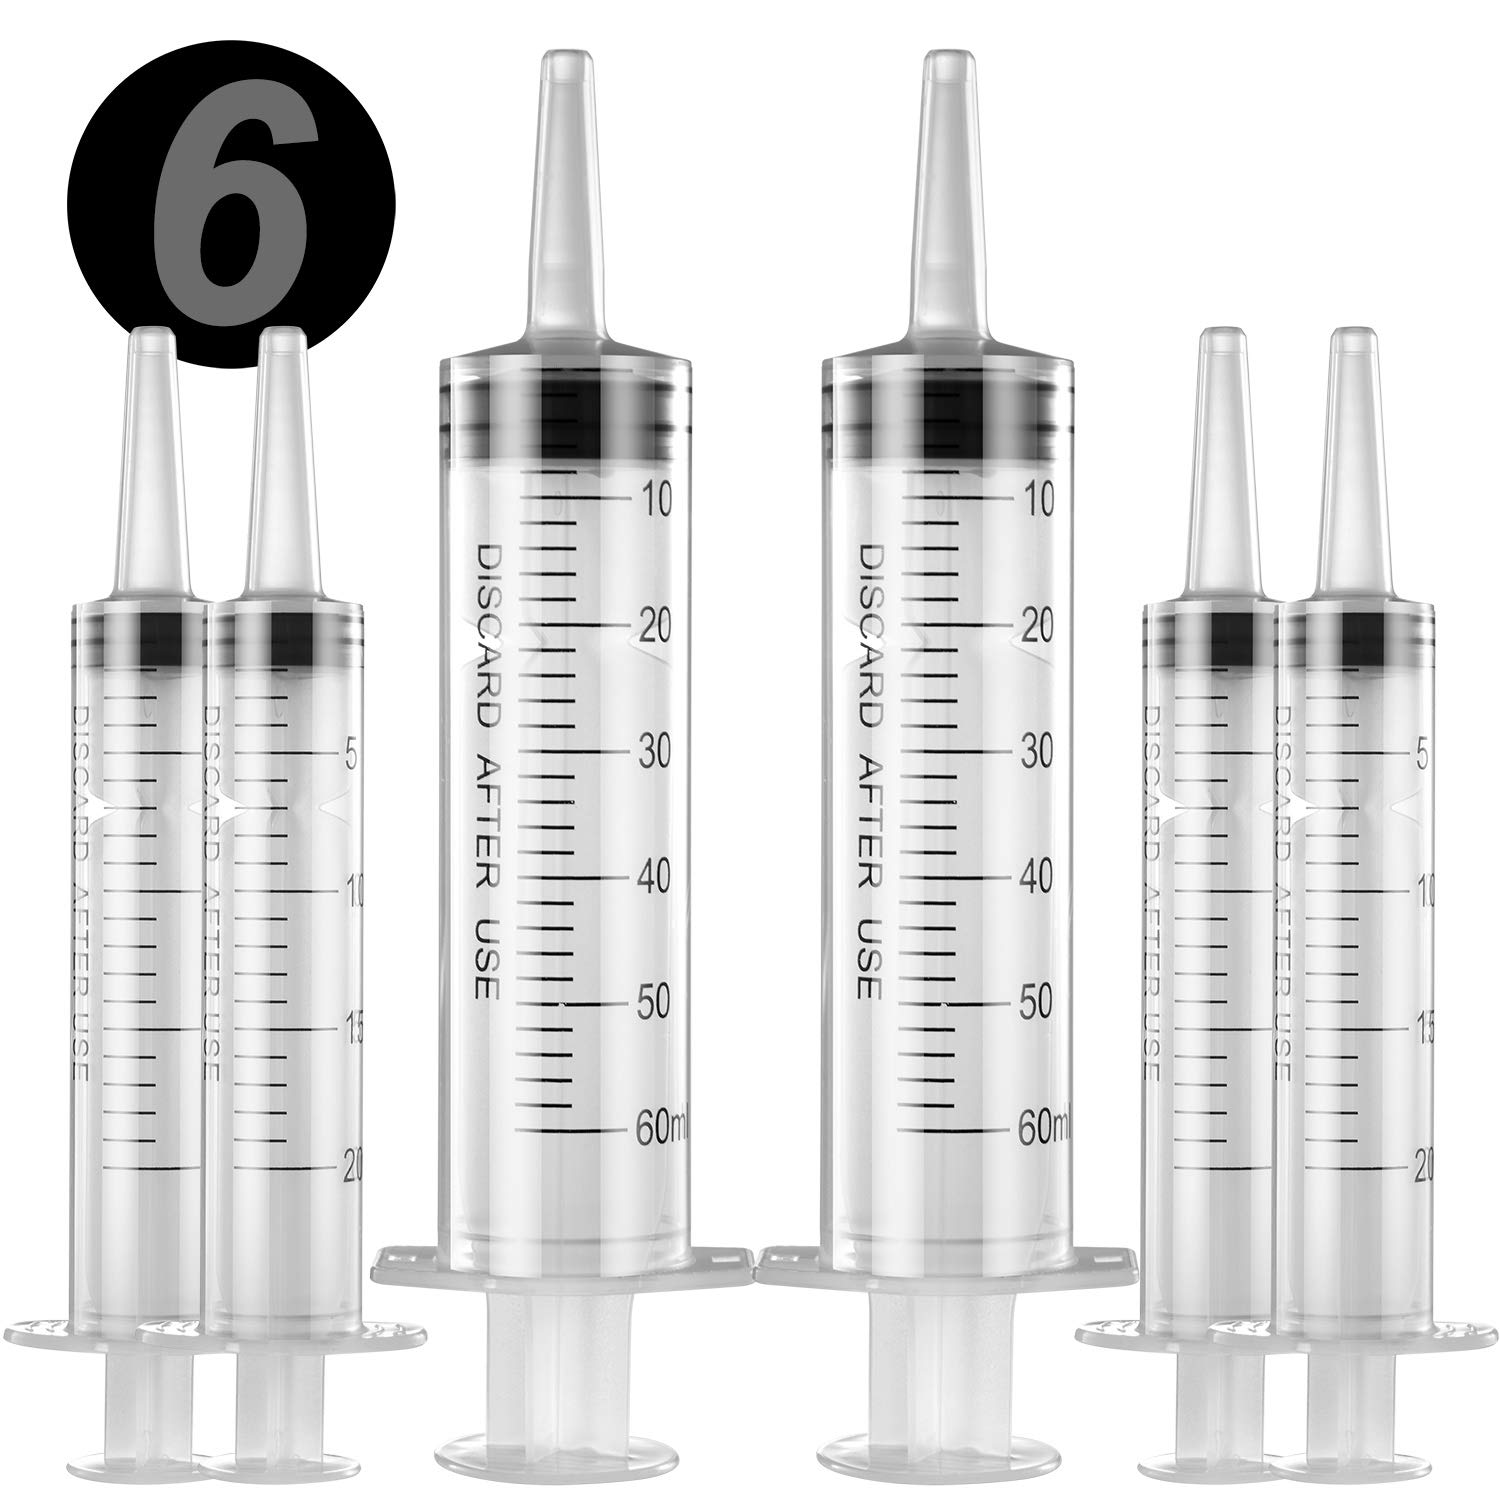 6 Pack Large Syringes, Large Plastic Garden Industrial Syringes for Scientific Labs, Measuring, Watering, Refilling, Filtration Multiple Uses (20 ML, 60 ML)